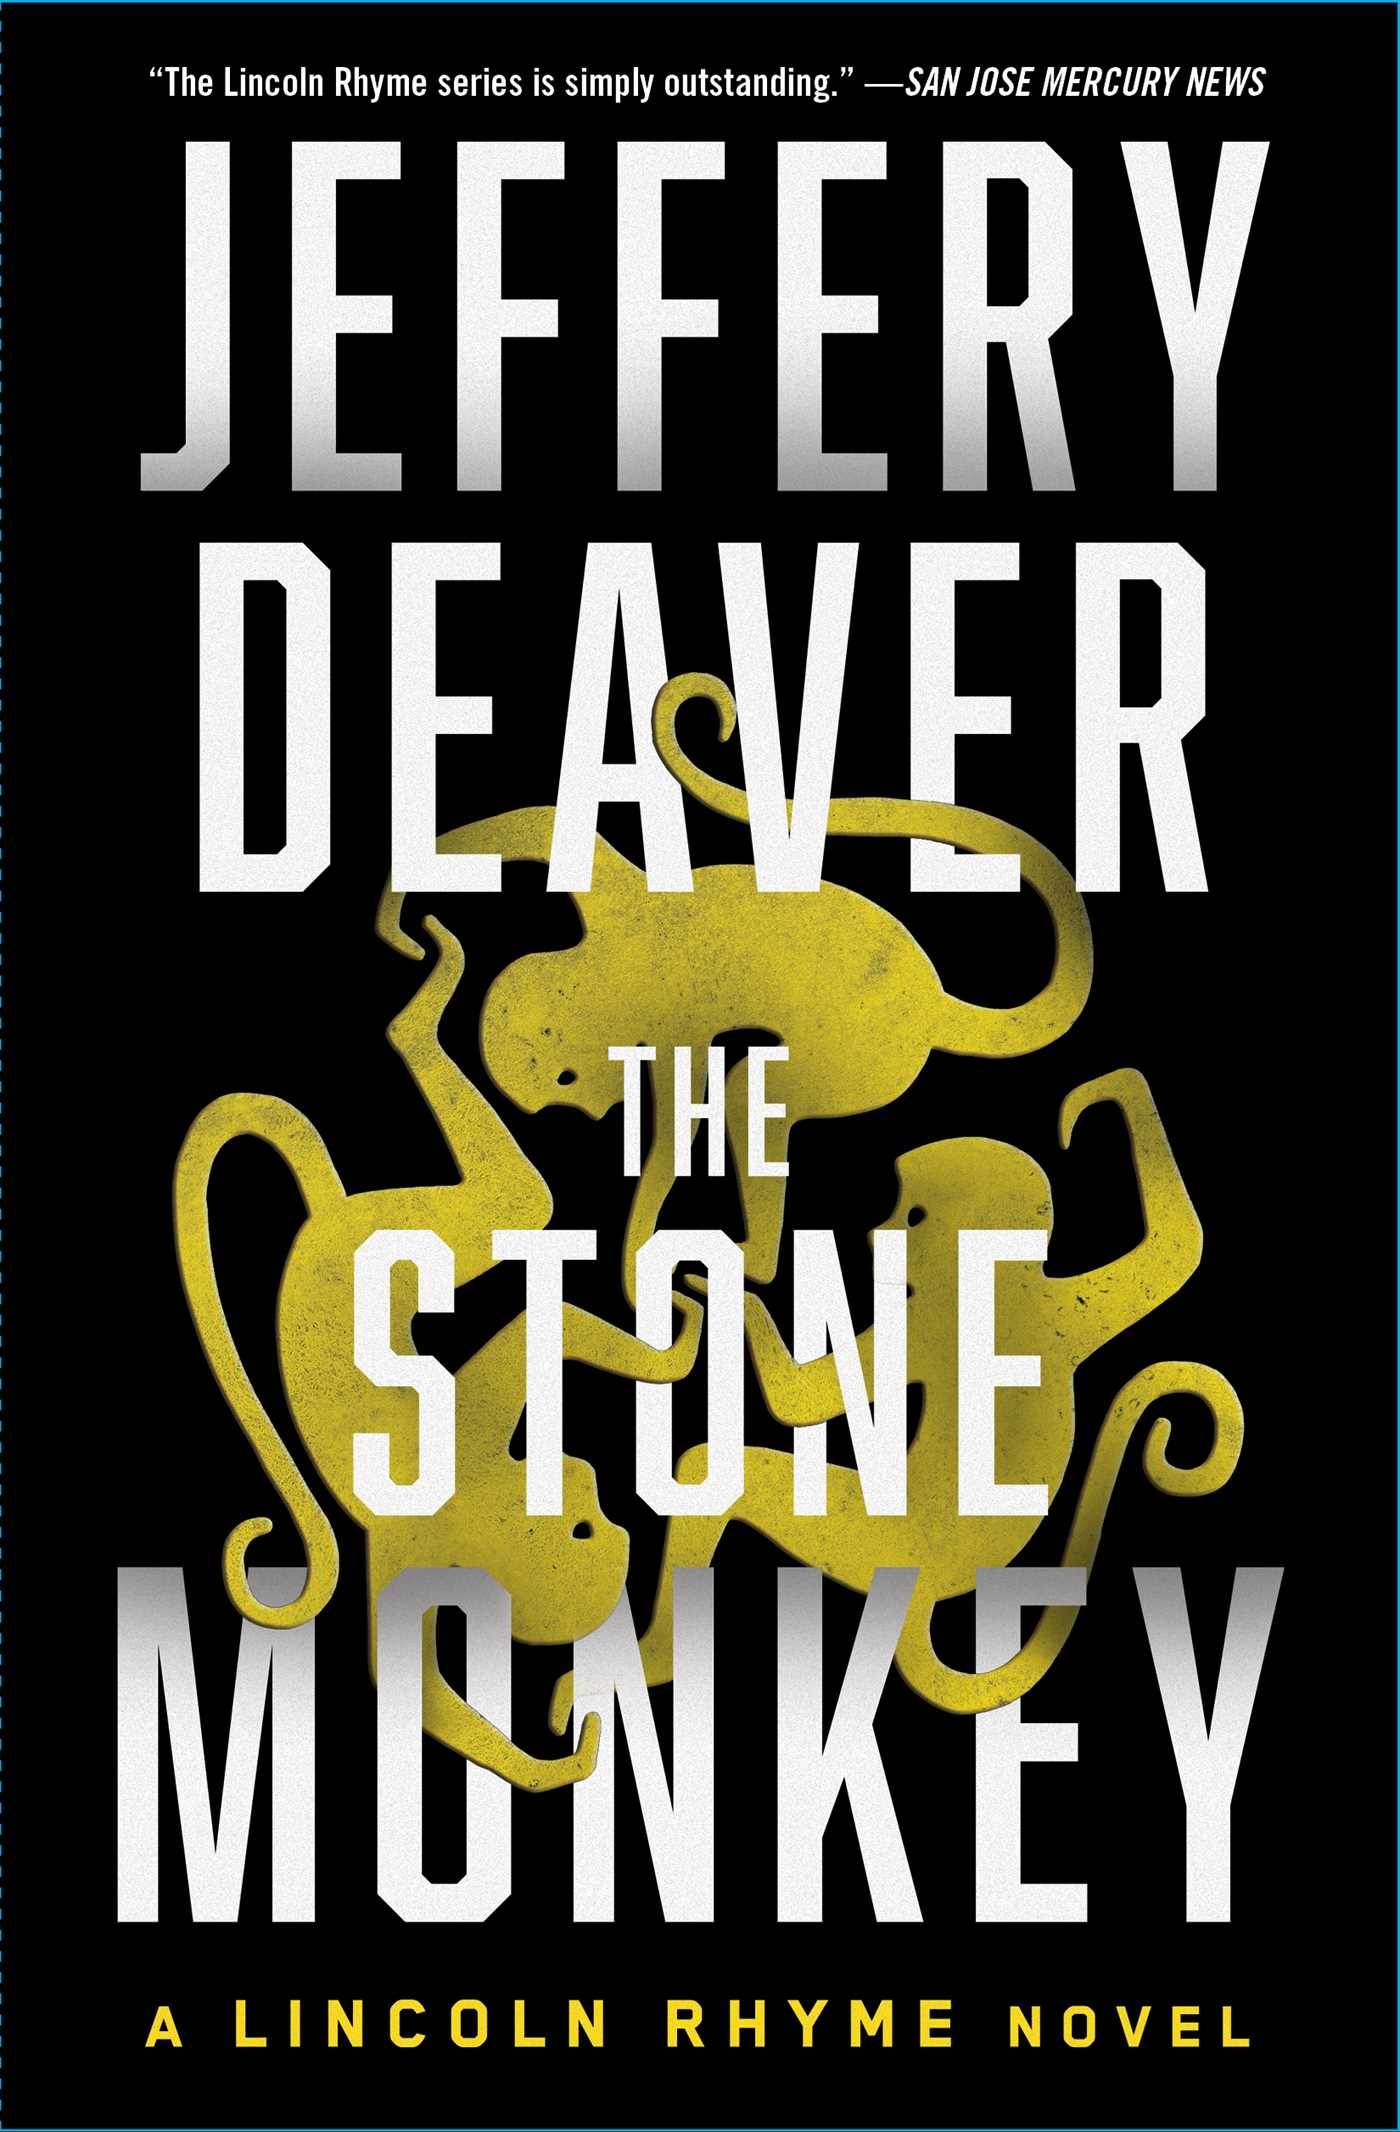 The-stone-monkey-9780743227773_hr